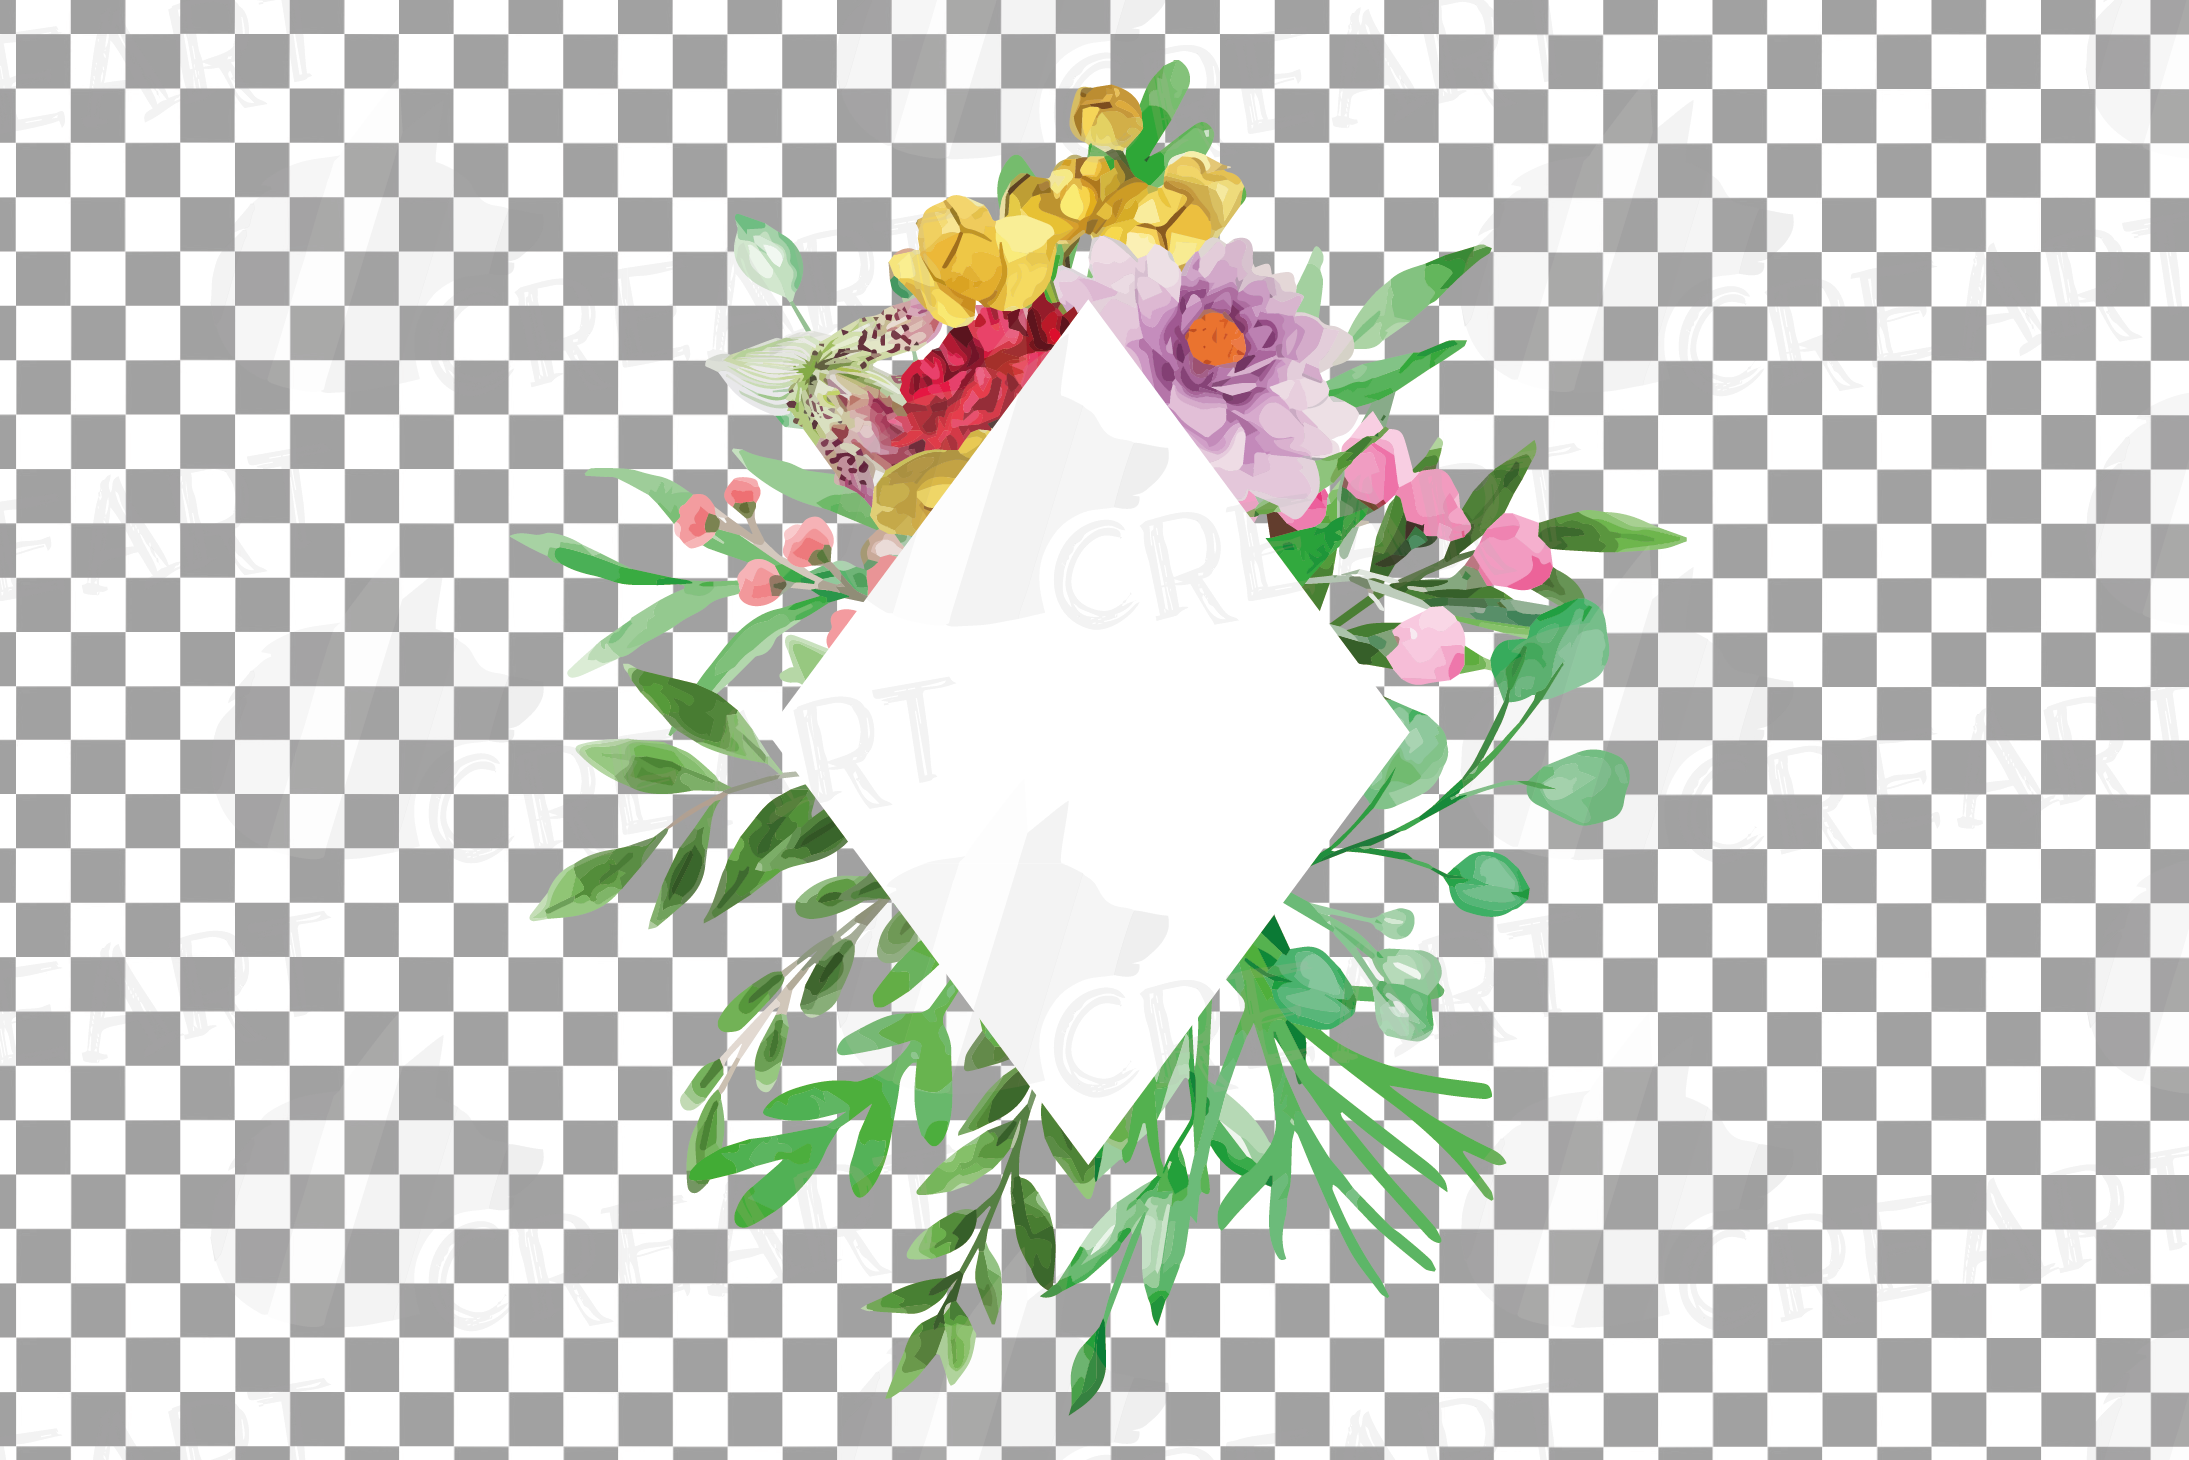 Watercolor floral floral frames and borders clip art pack example image 25